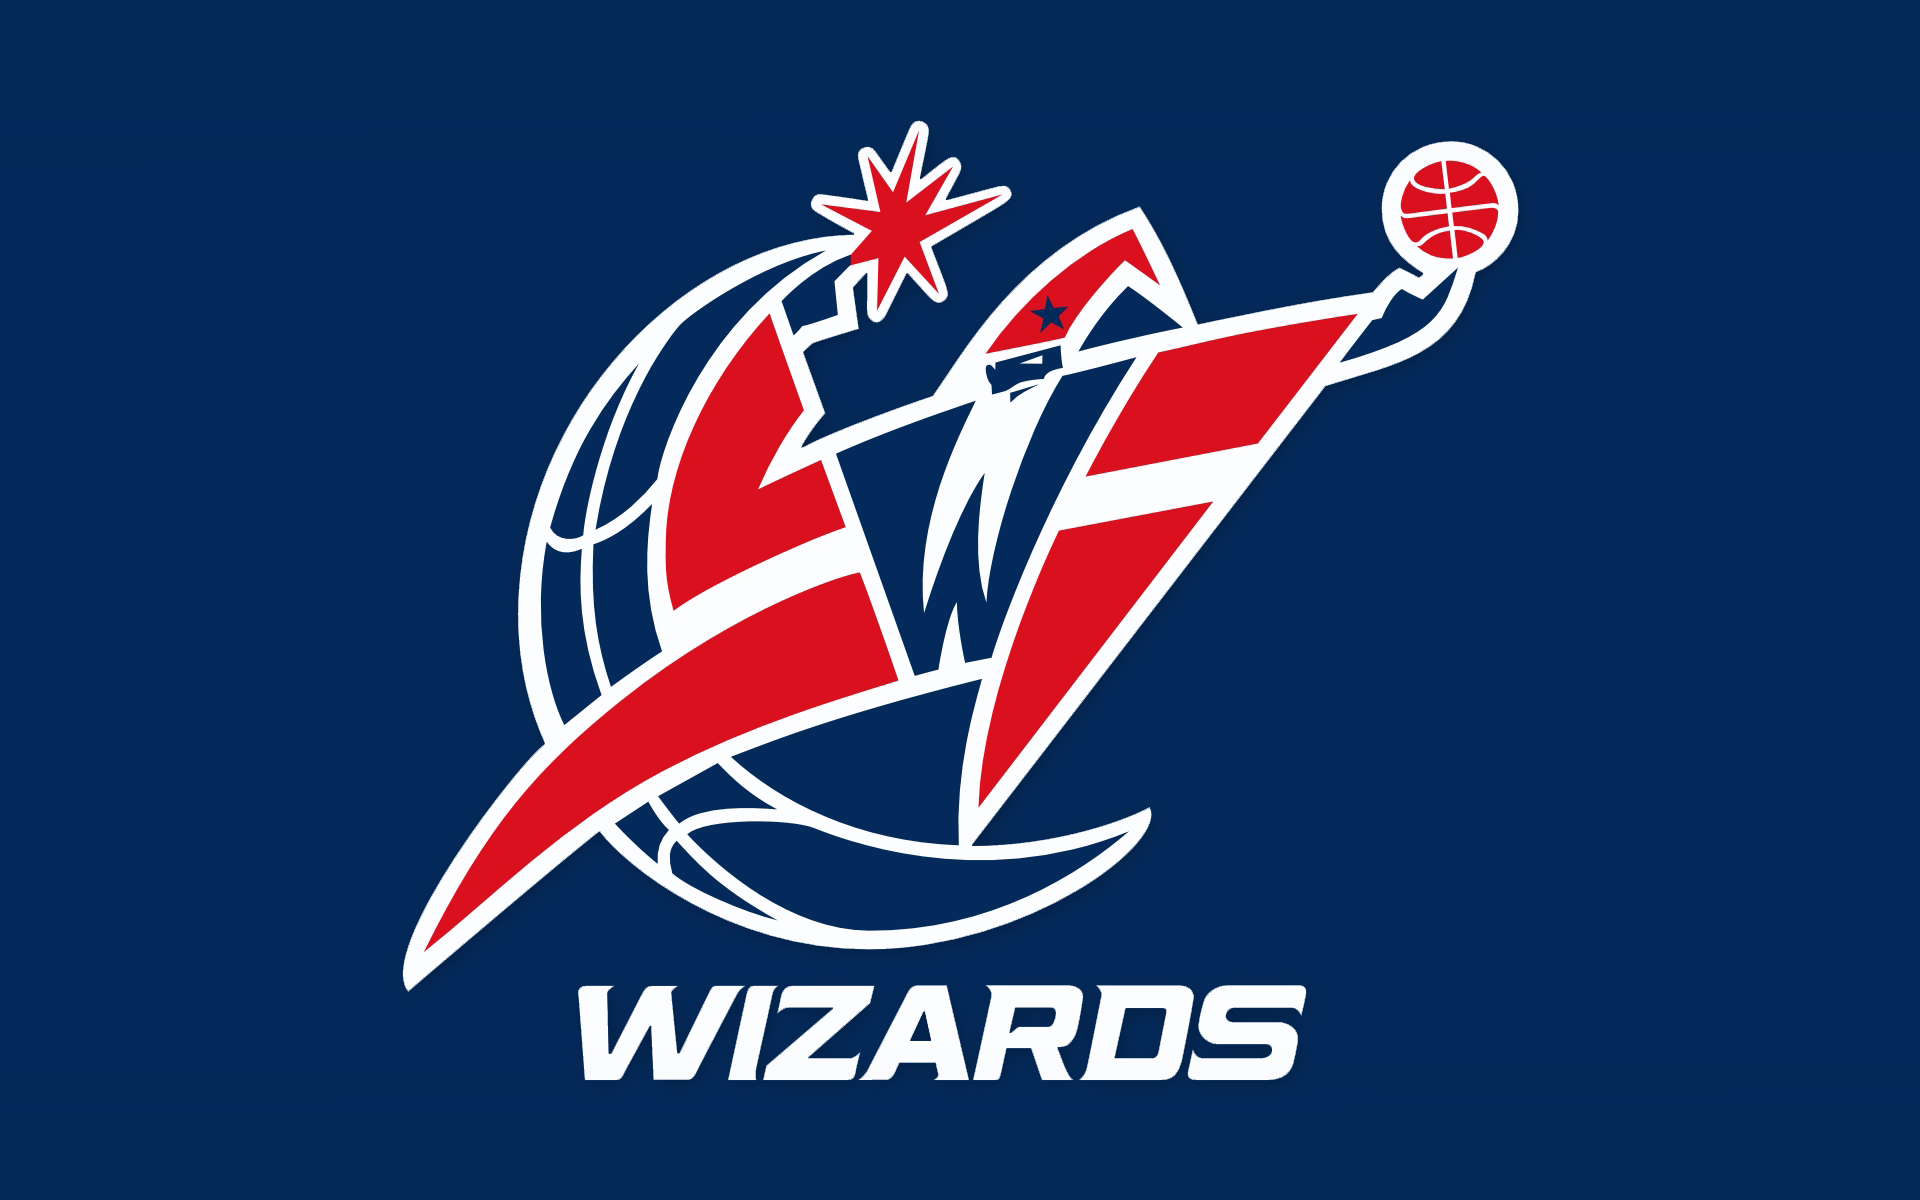 Pictures Of Wizards 16